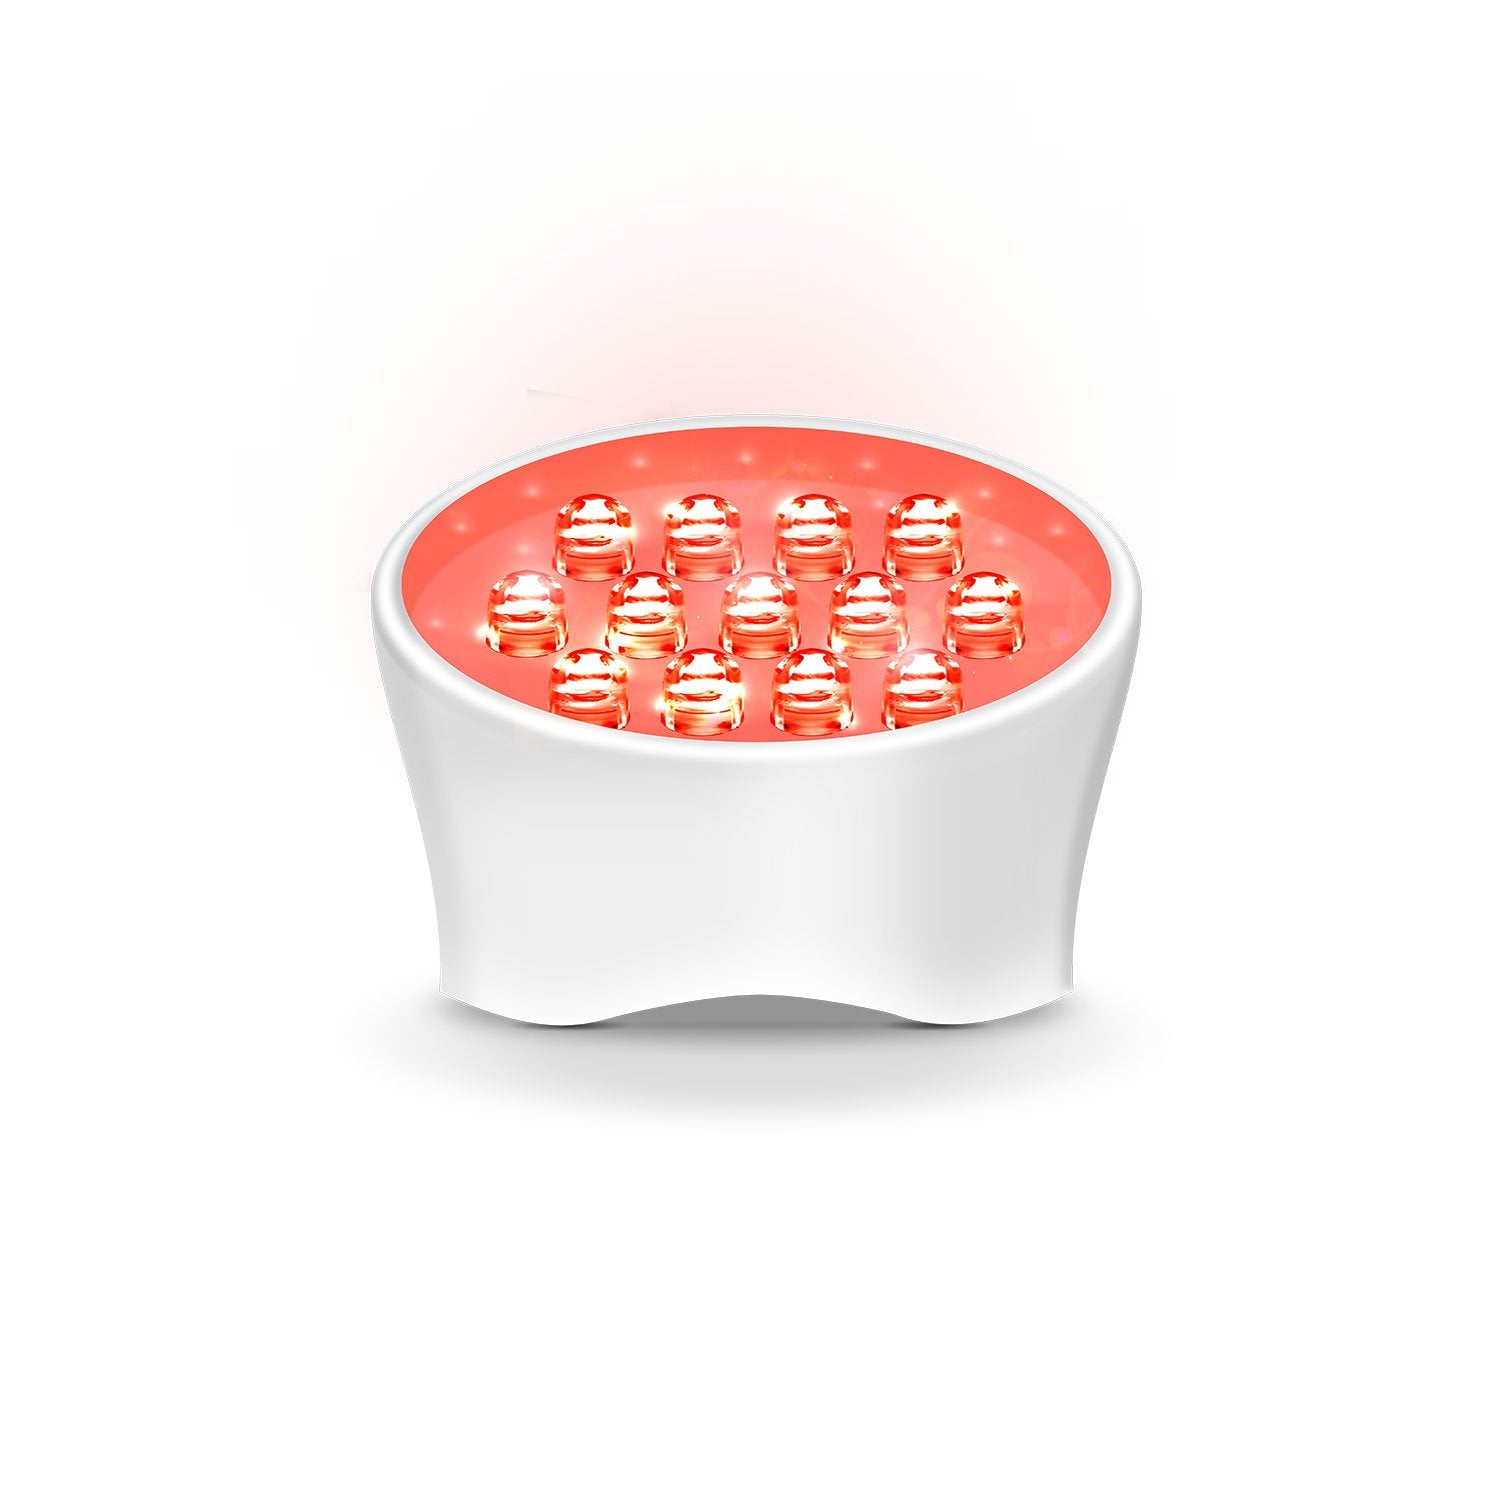 Nuovaluce Microcurrent and Light Therapy Device